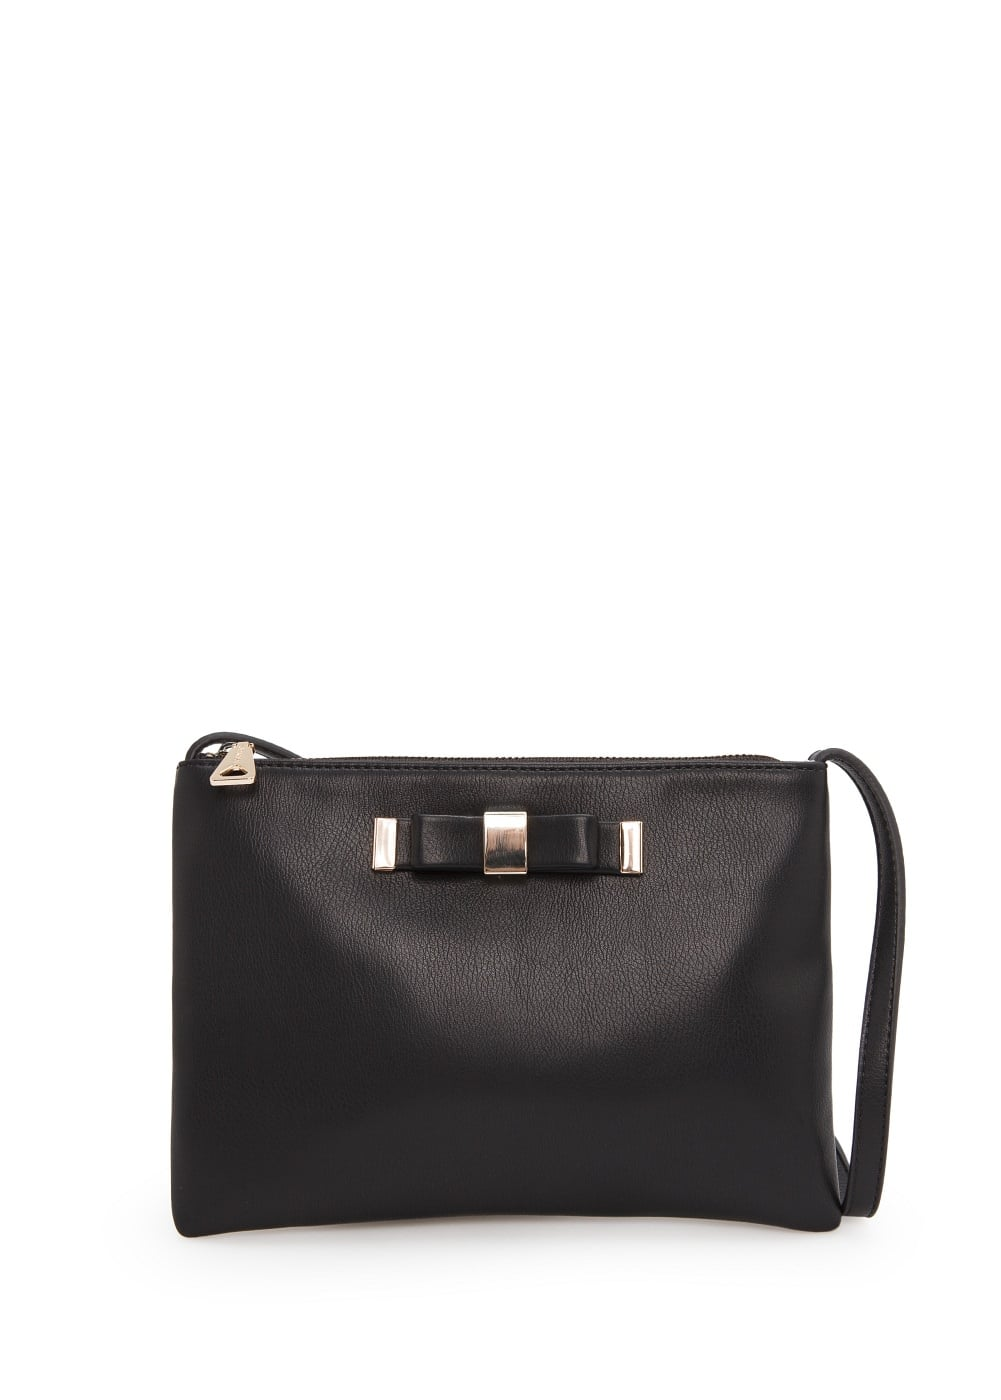 Bow cross body bag